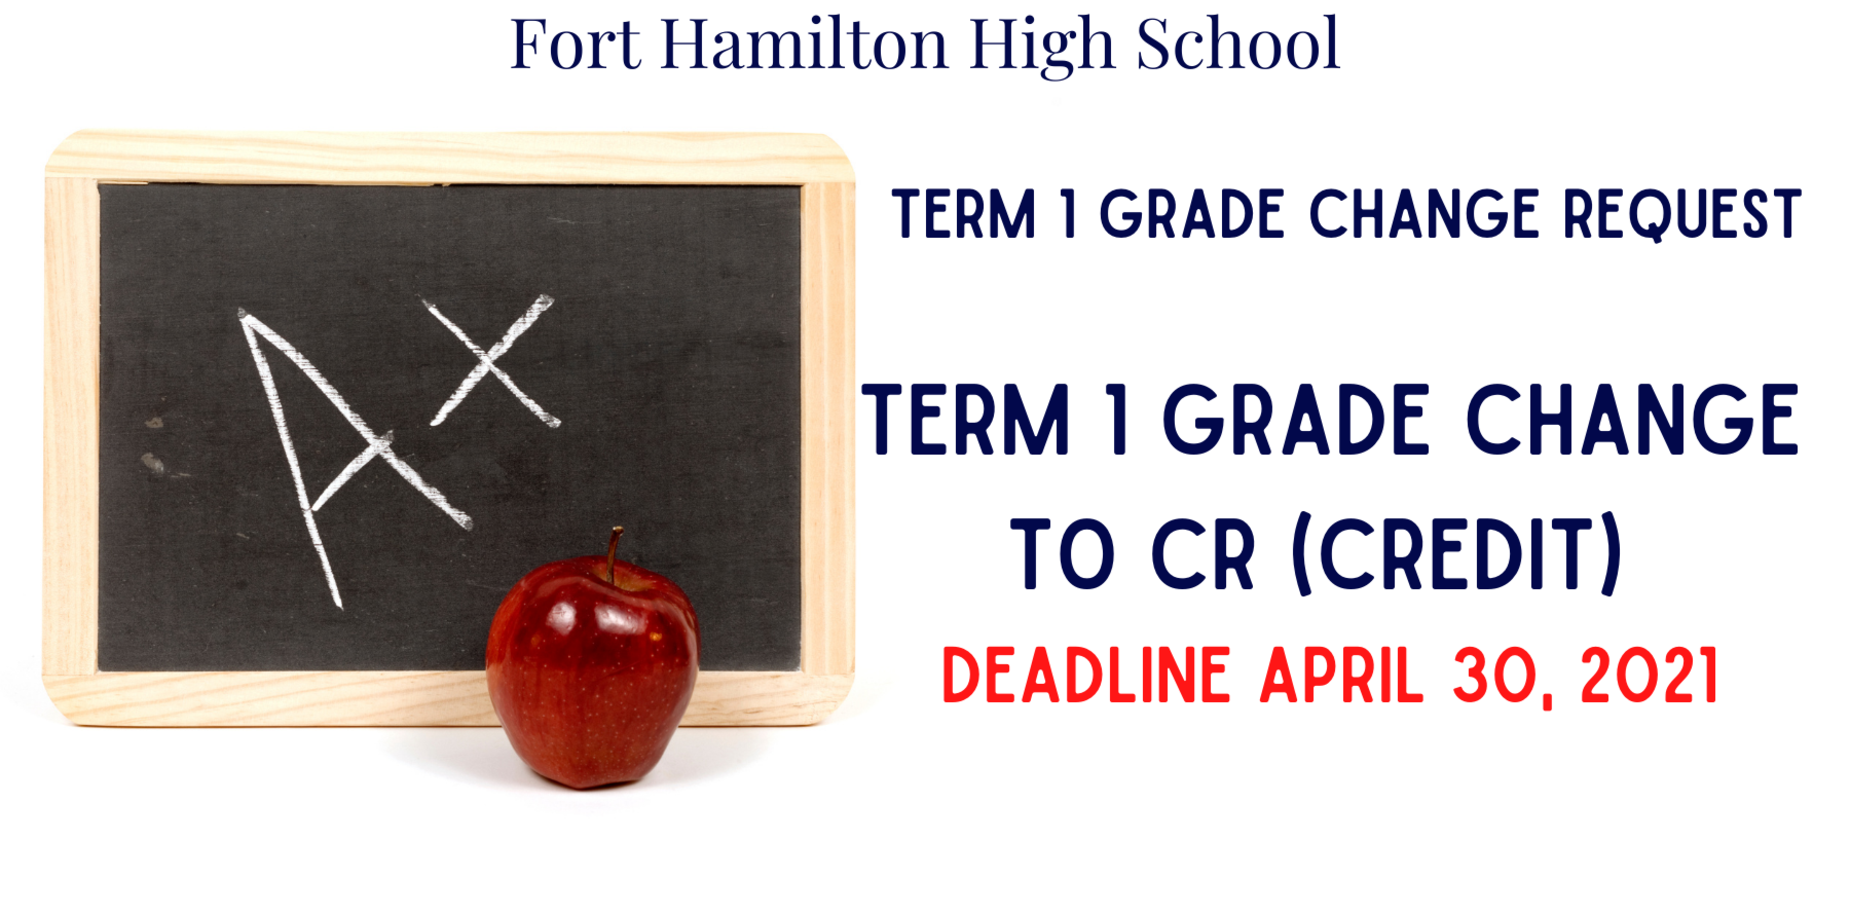 Fort Hamilton High School Term 1 grade change request. Term 1 Grade Change to Credit Deadline April 30, 2021. To the left there is a small chalkboard with an A plus and a red apple